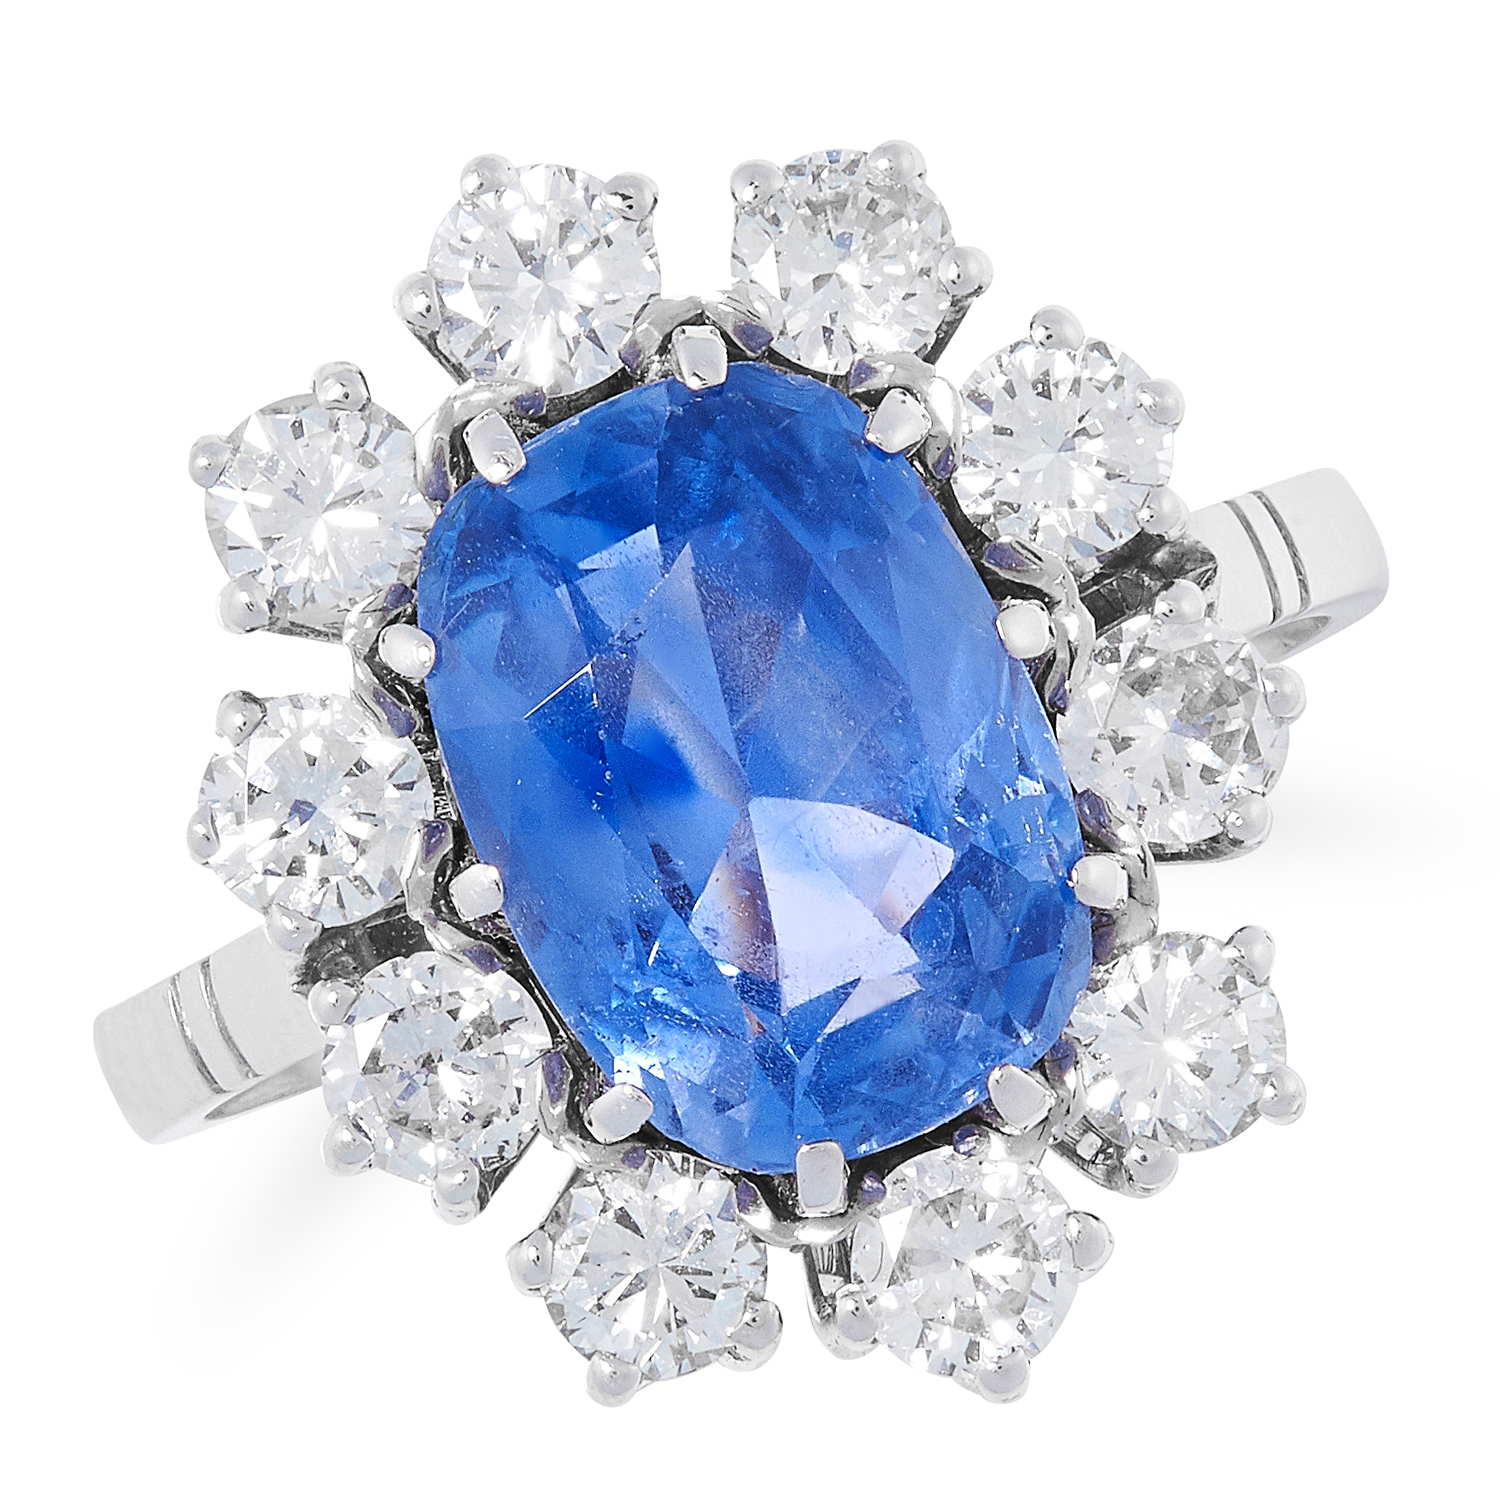 4.15 CARAT CEYLON NO HEAT SAPPHIRE AND DIAMOND CLUSTER RING comprising of an oval cut sapphire of